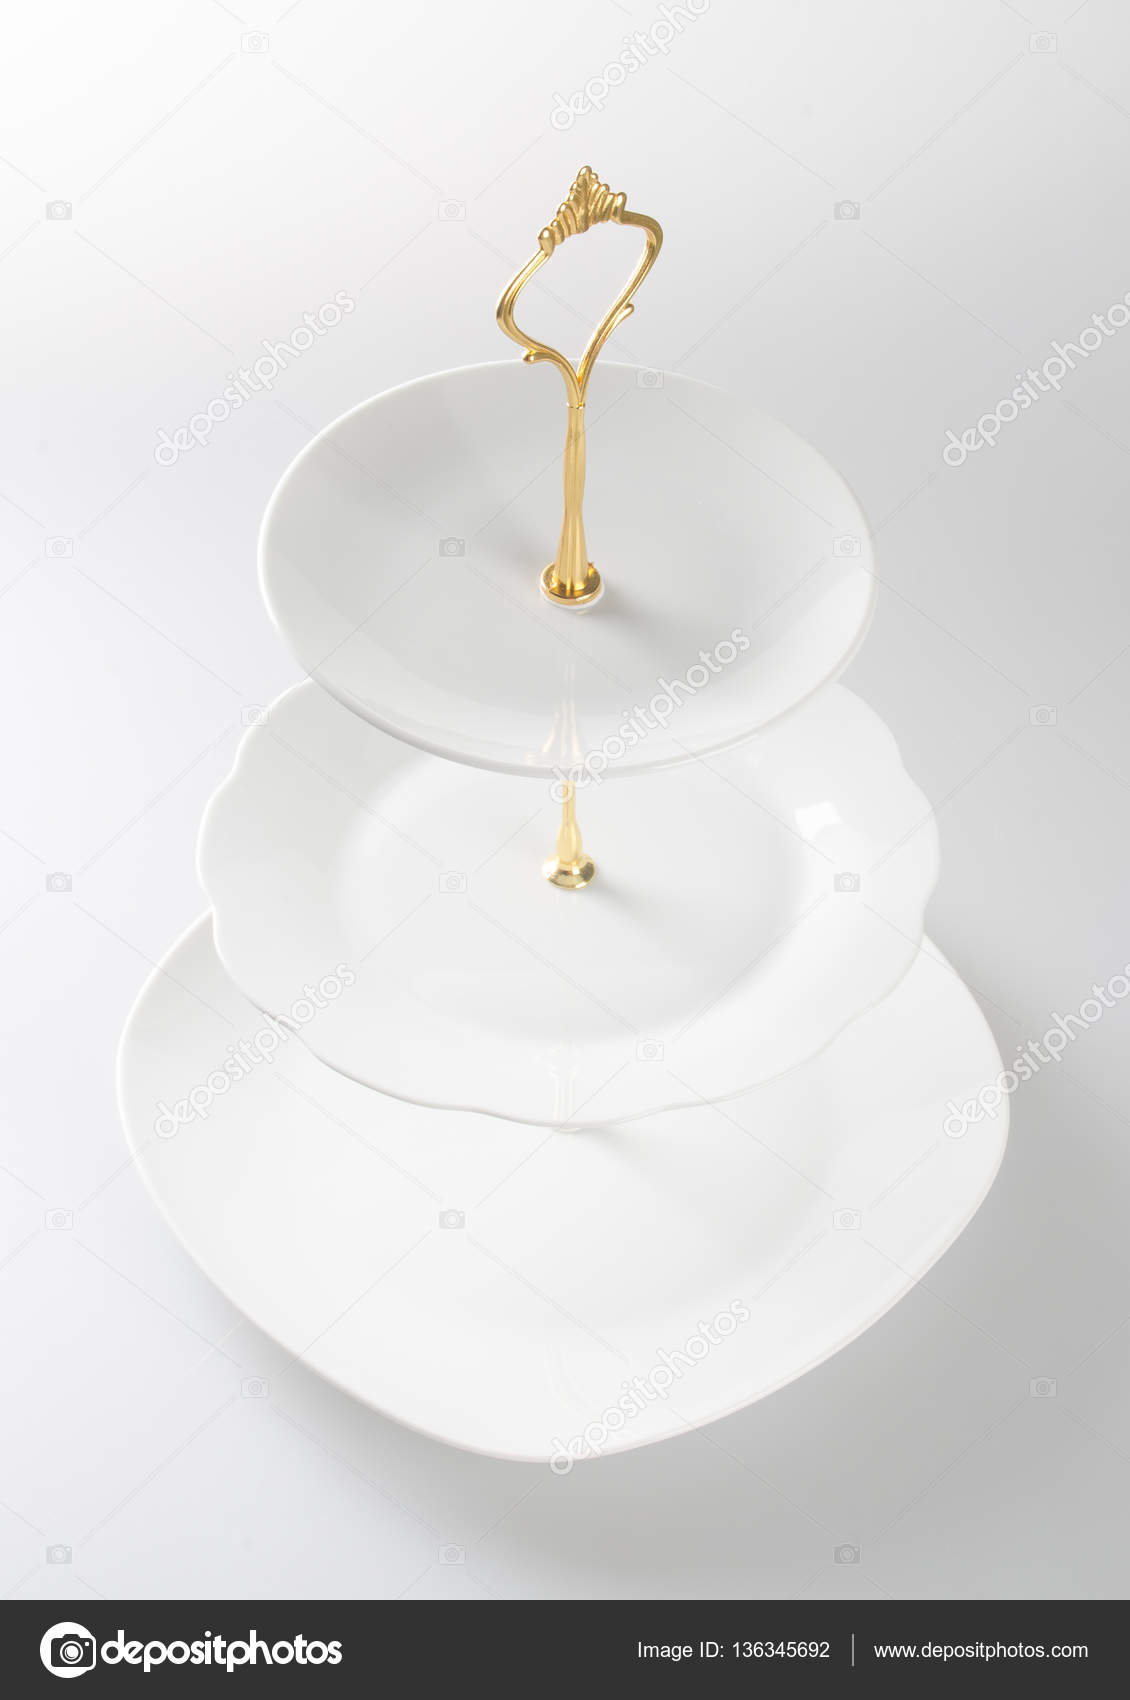 Tray Or Three Tier Serving Tray On A Background Stock Photo C Heinteh 136345692